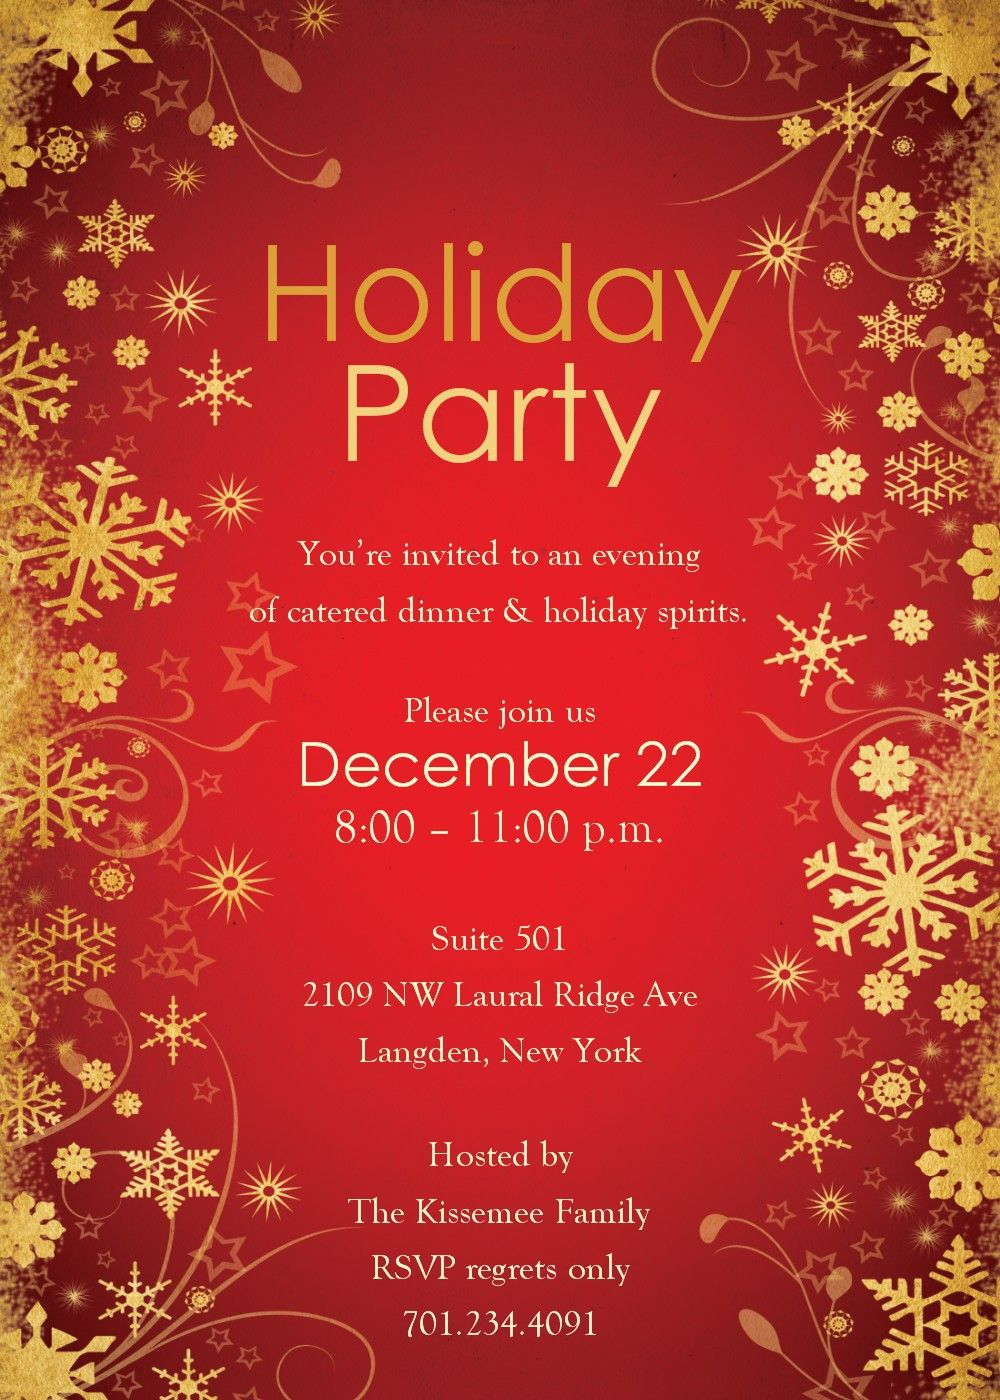 Christmas Party Invitations Templates Word  Invite Templates For Word